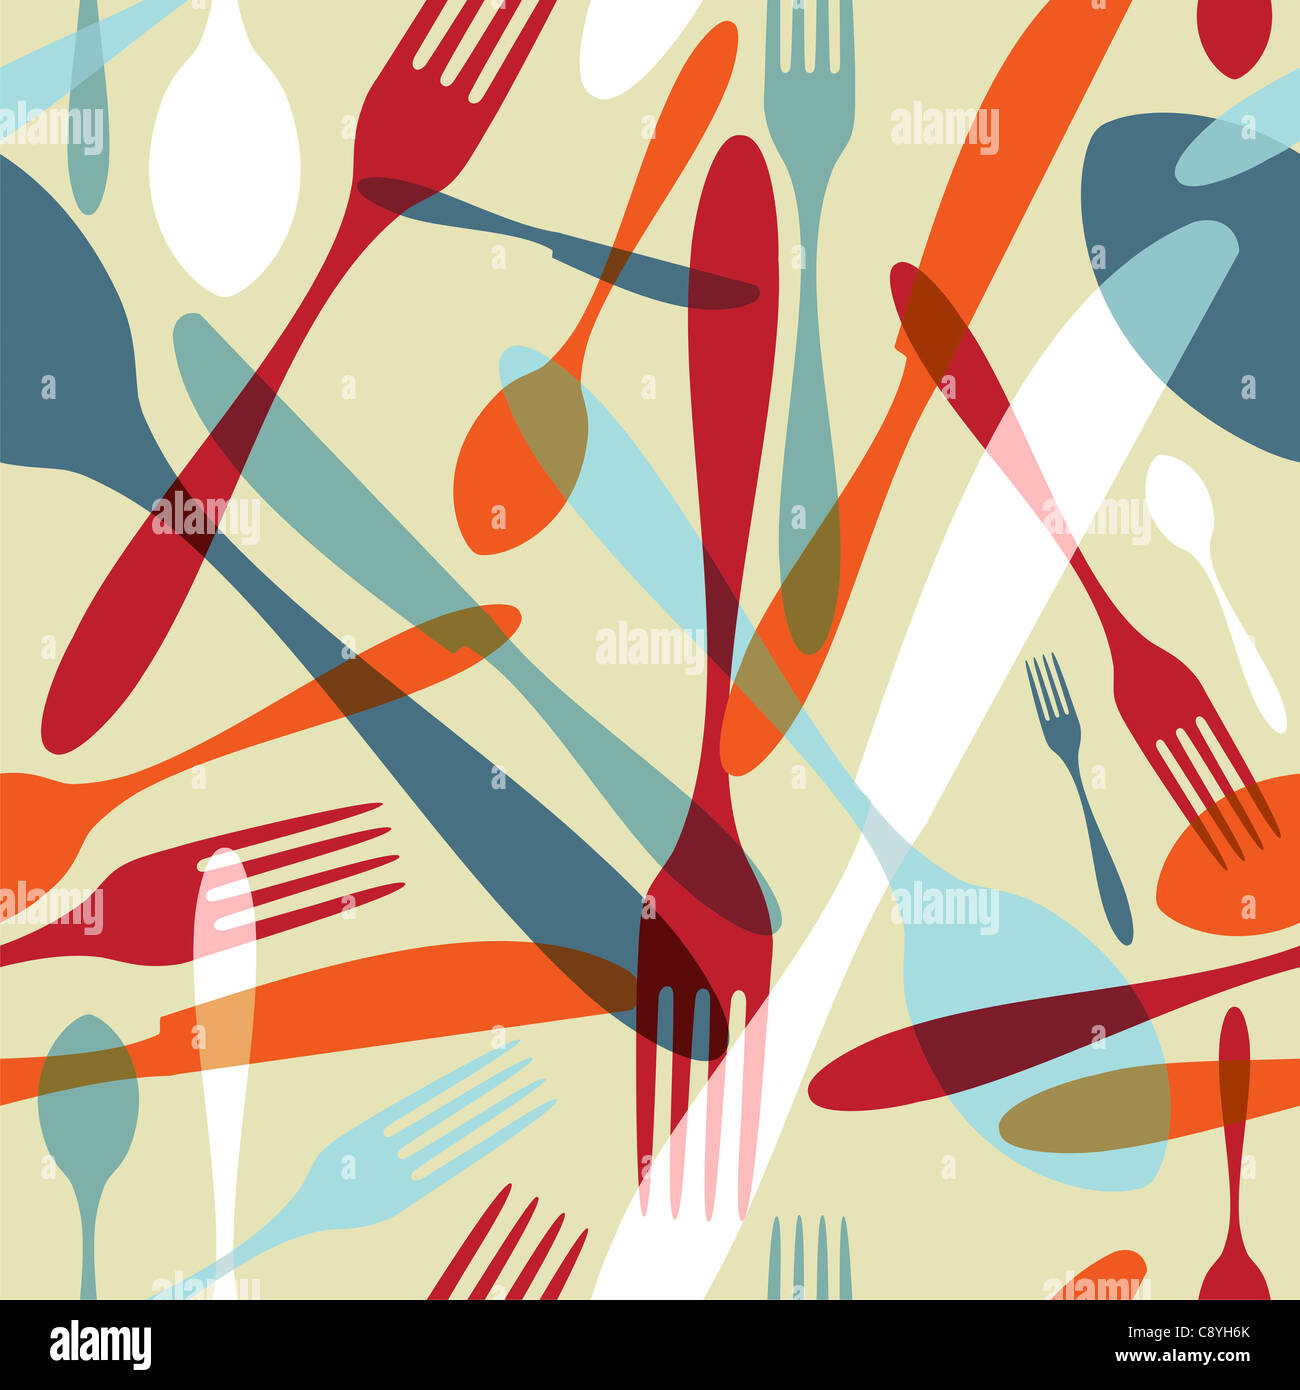 Transparency silverware icons seamless pattern background. Fork, knife and spoon silhouettes on different sizes Stock Photo